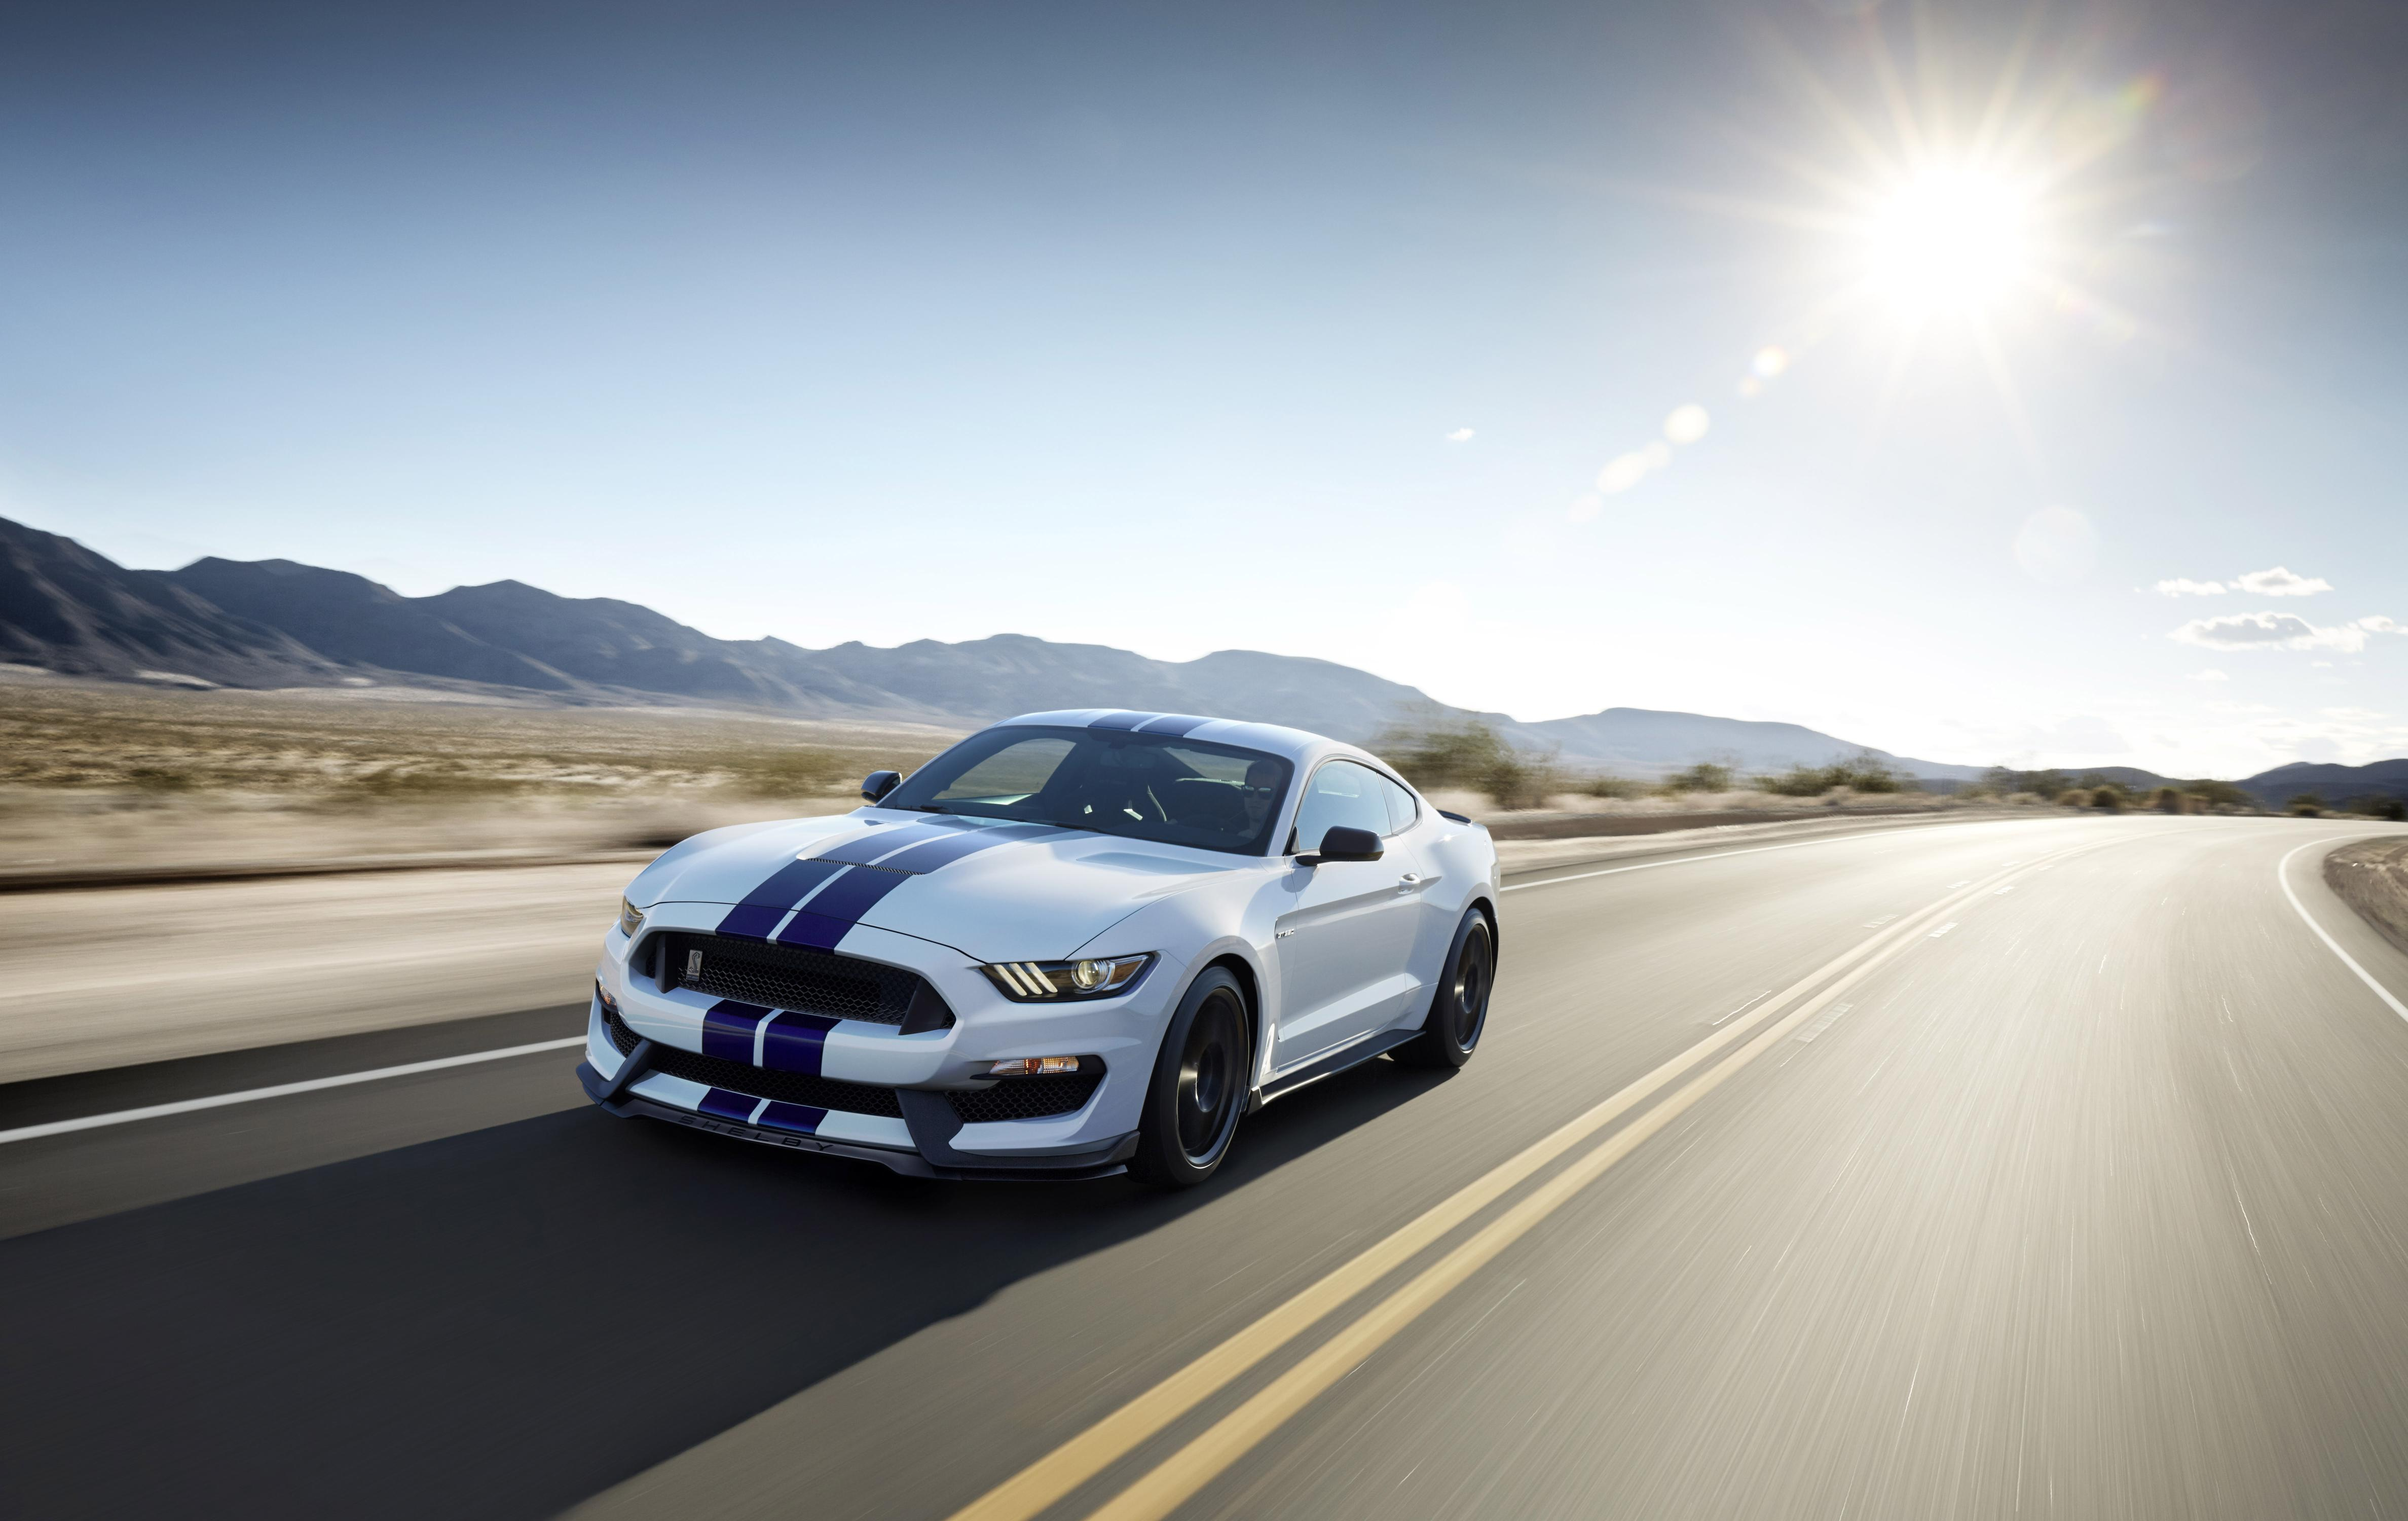 Ford Mustang Shelby Gt500 2 Hd Cars 4k Wallpapers Images